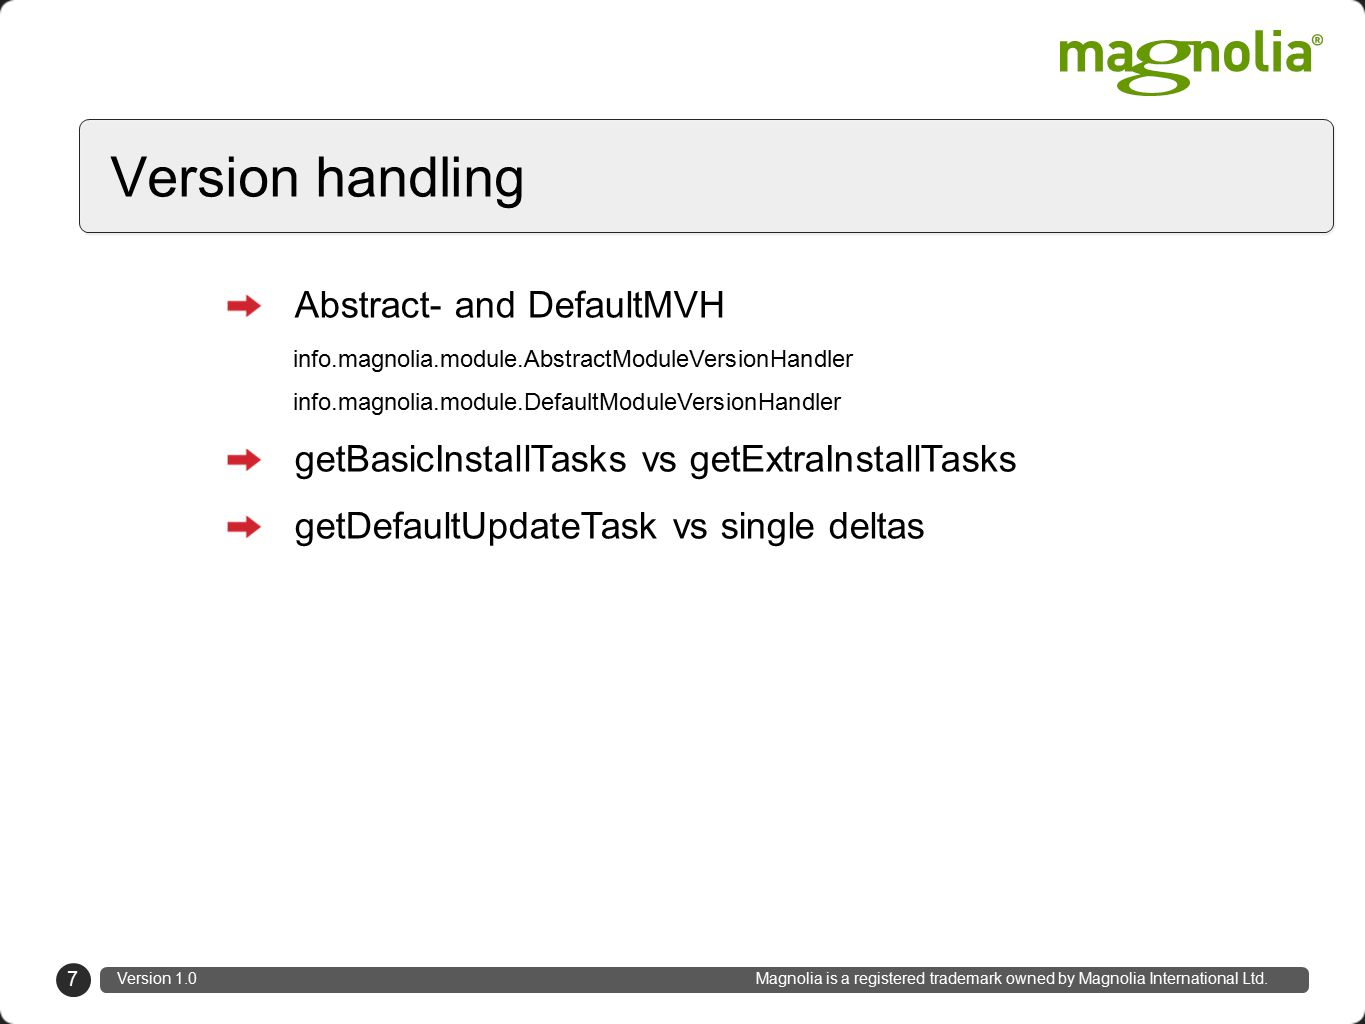 Abstract- and DefaultMVH info.magnolia.module.AbstractModuleVersionHandler info.magnolia.module.DefaultModuleVersionHandler getBasicInstallTasks vs getExtraInstallTasks getDefaultUpdateTask vs single deltas 7 Version handling Version 1.0 Magnolia is a registered trademark owned by Magnolia International Ltd.